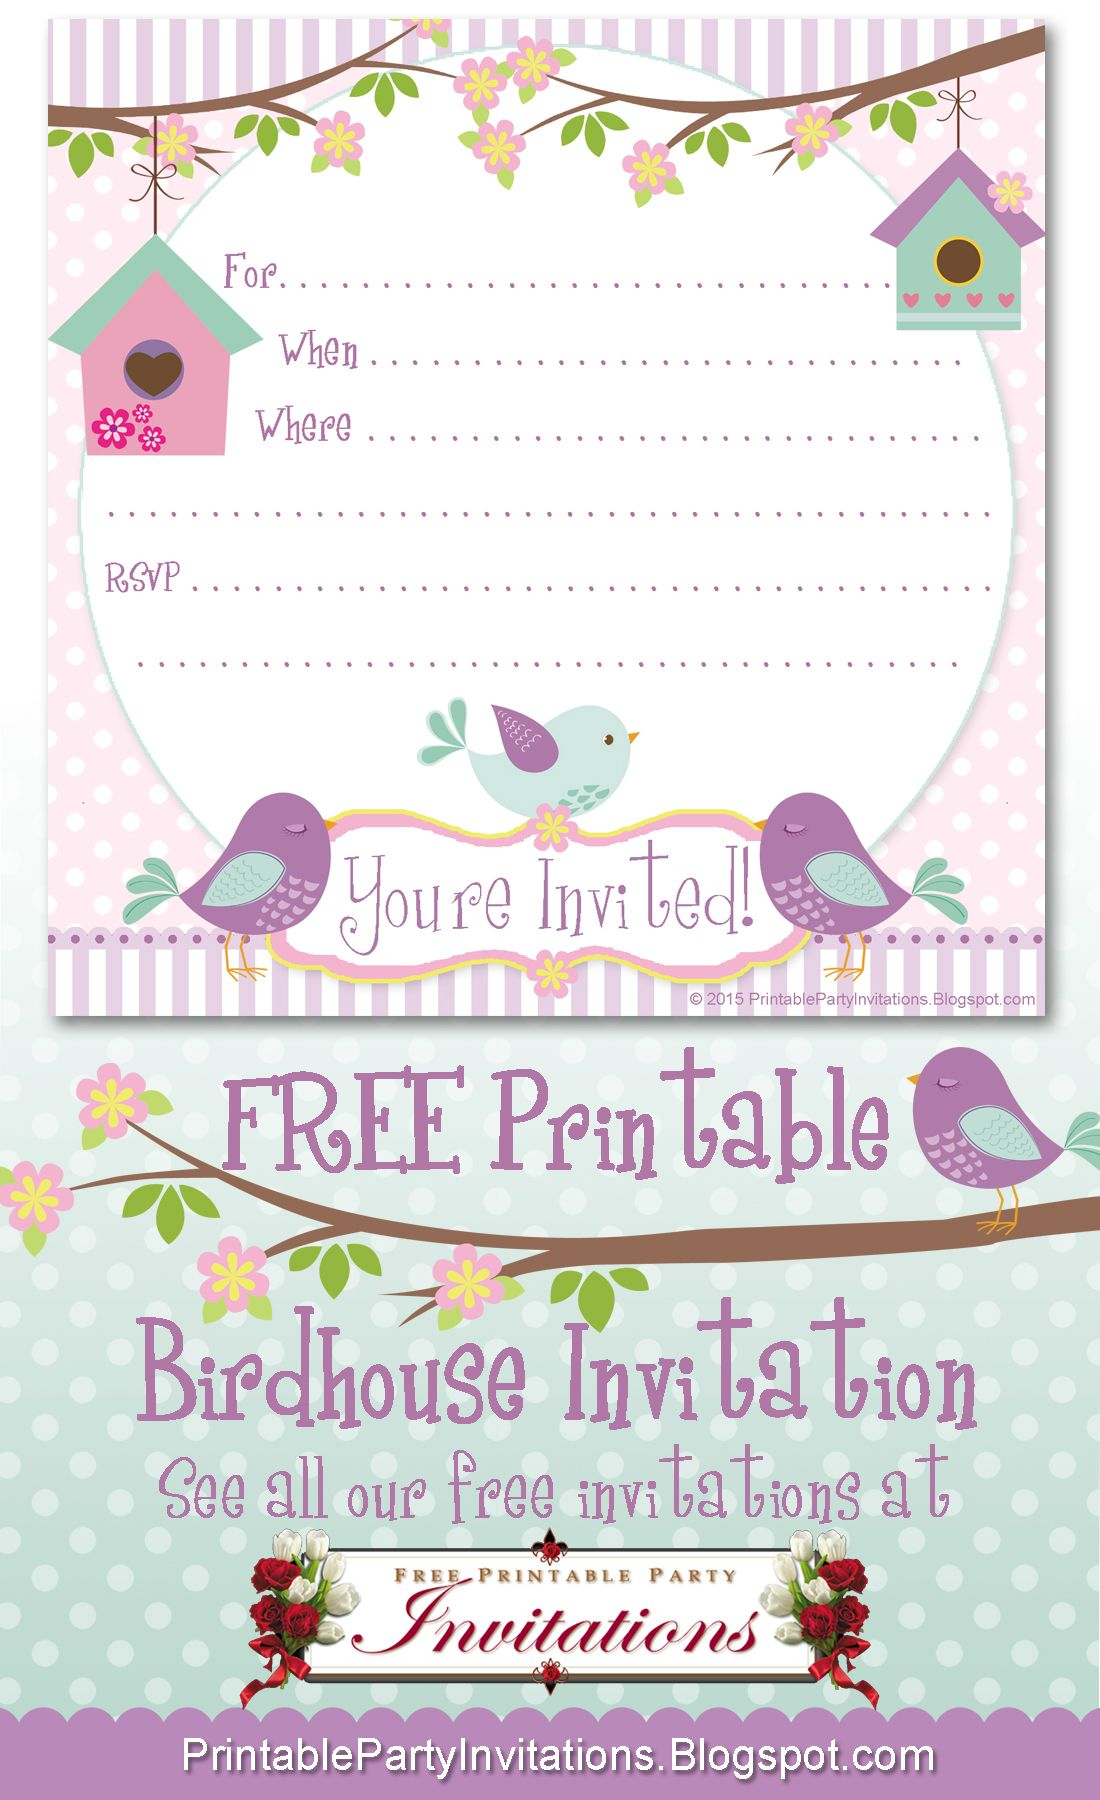 image about Free Printable Cards for All Occasions titled No cost Birdhouse All Bash Bash Invitation Social gathering